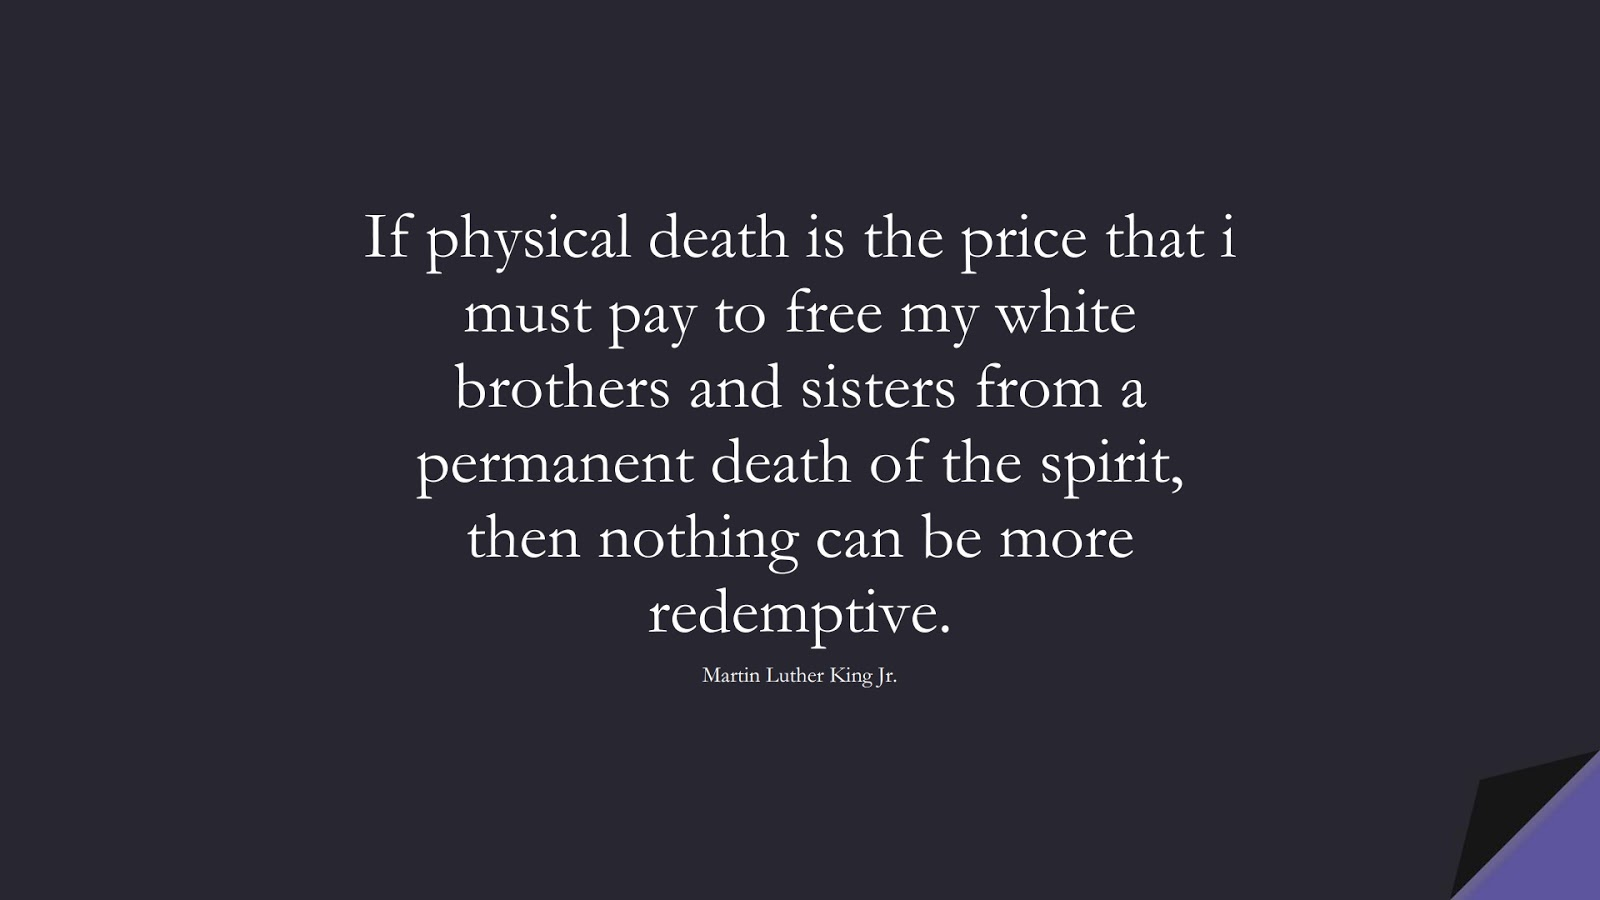 If physical death is the price that i must pay to free my white brothers and sisters from a permanent death of the spirit, then nothing can be more redemptive. (Martin Luther King Jr.);  #MartinLutherKingJrQuotes